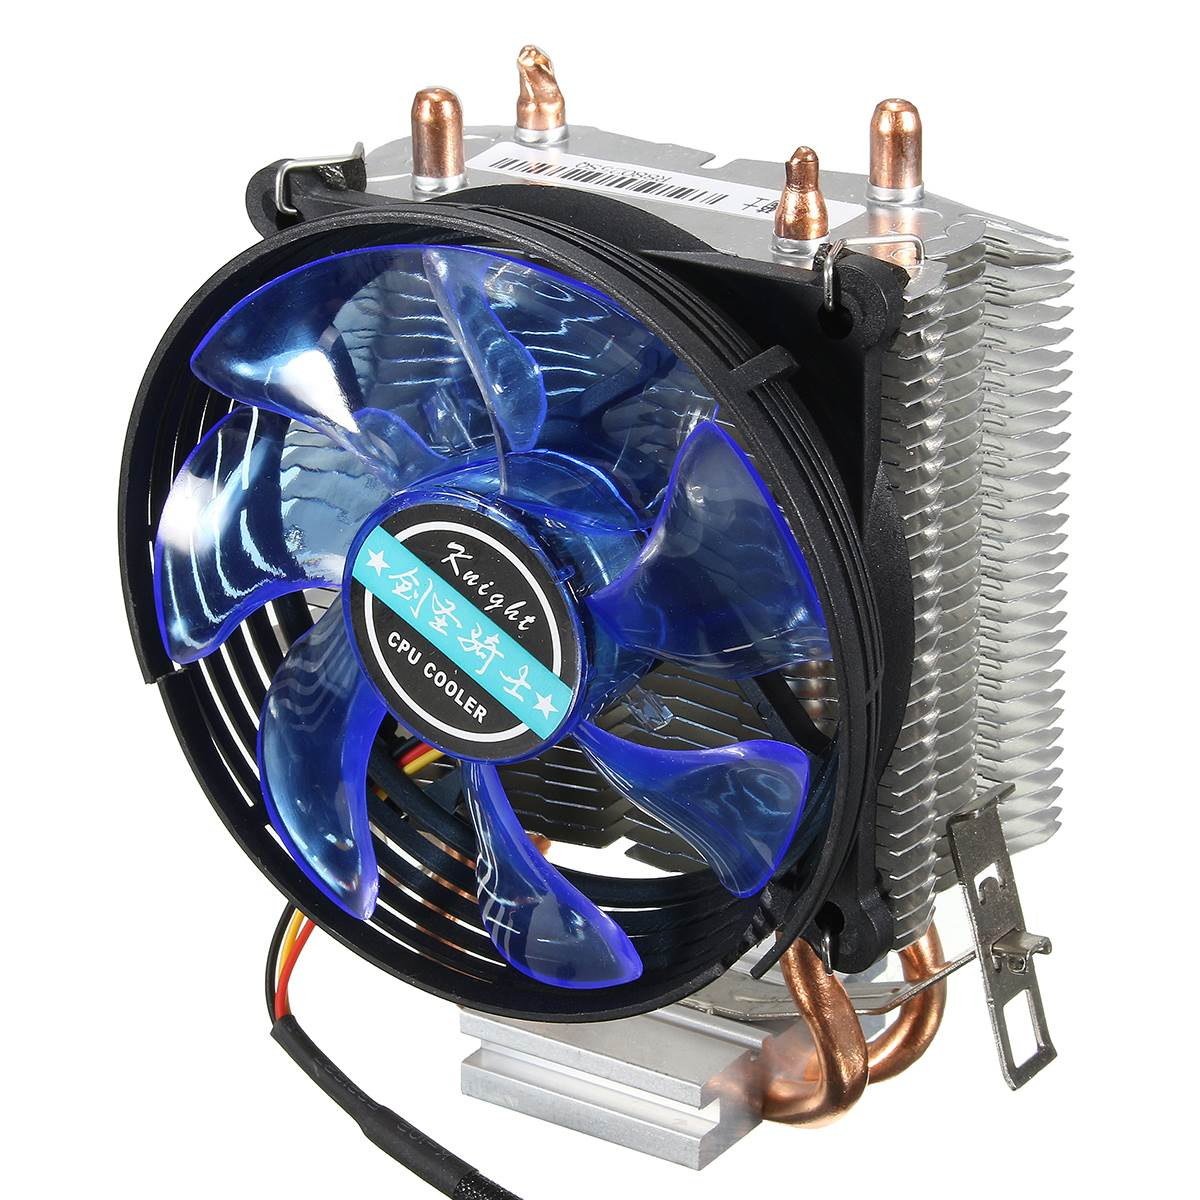 95x95x25mm LED Cooler Cpu Fan Heatsink Copper for Intel LGA775/1156/1155 for AMD AM2/AM2+/AM3 best quality pc cpu cooler cooling fan heatsink for intel lga775 1155 amd am2 am3